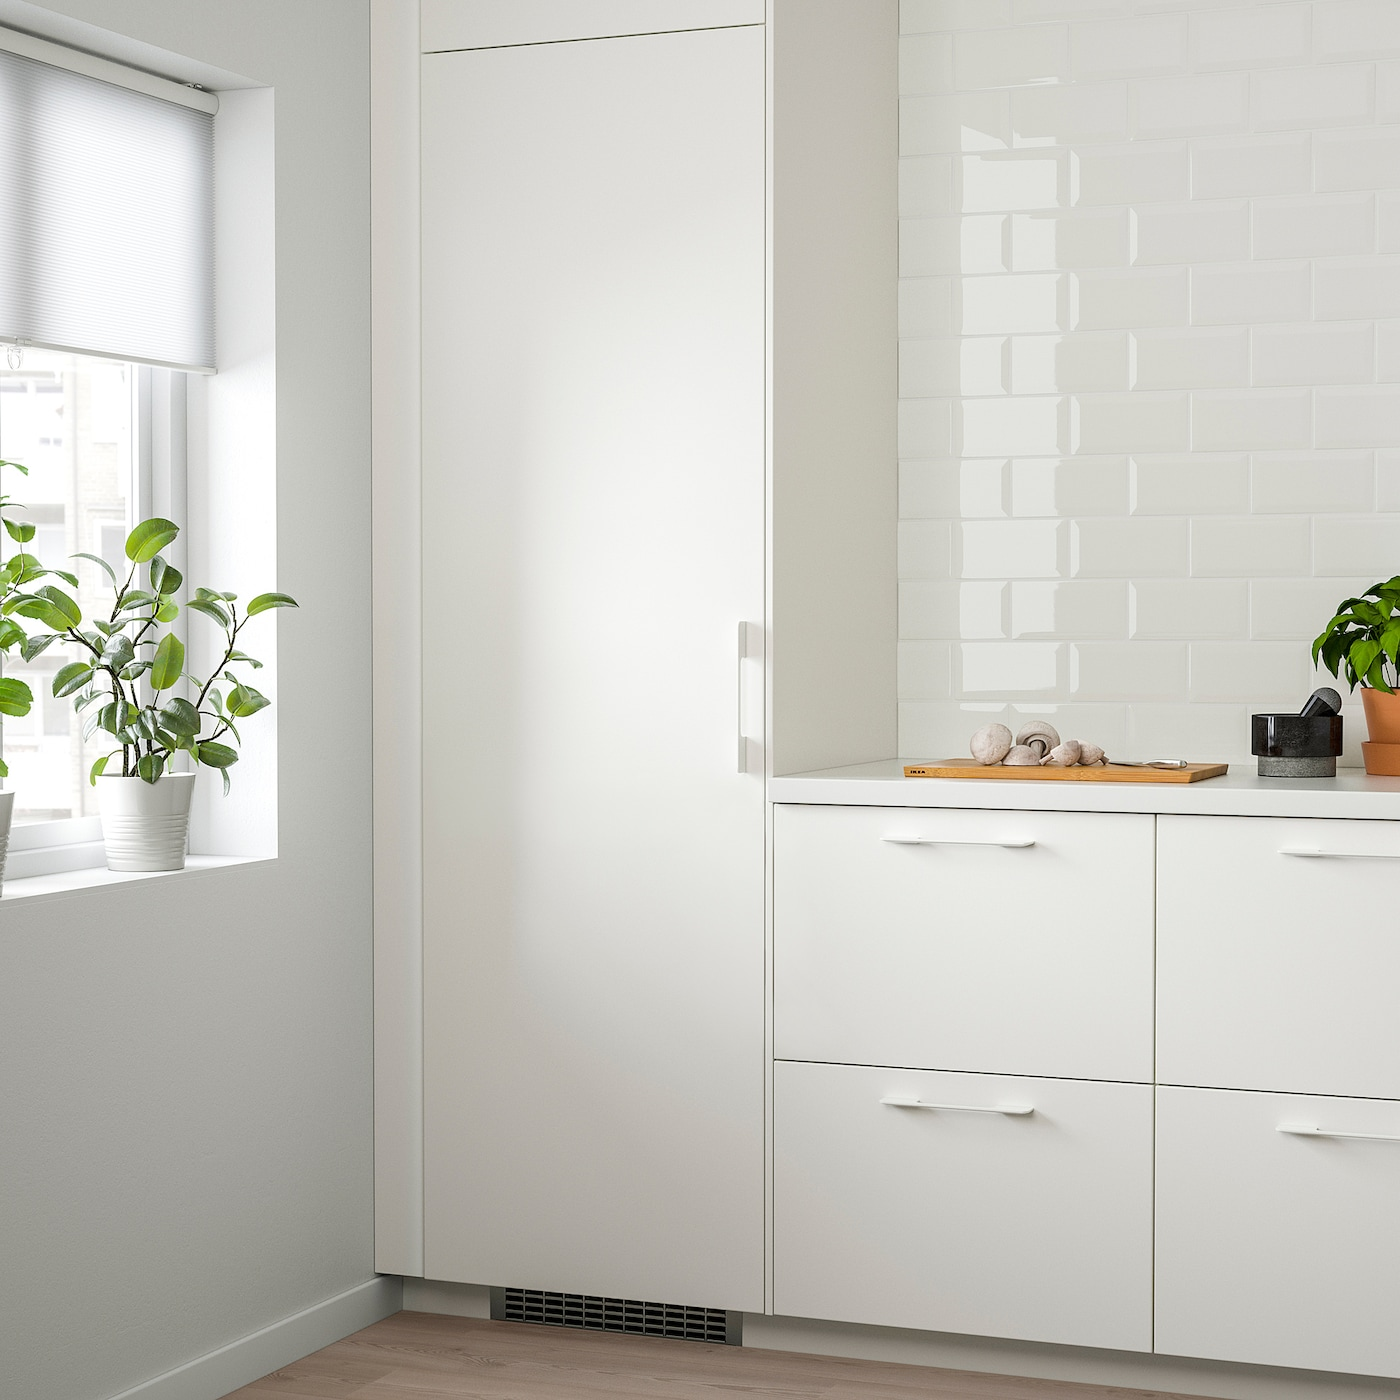 Installer Frigo Encastrable Ikea frostig réfrigérateur encastrable a++ - blanc 314 l